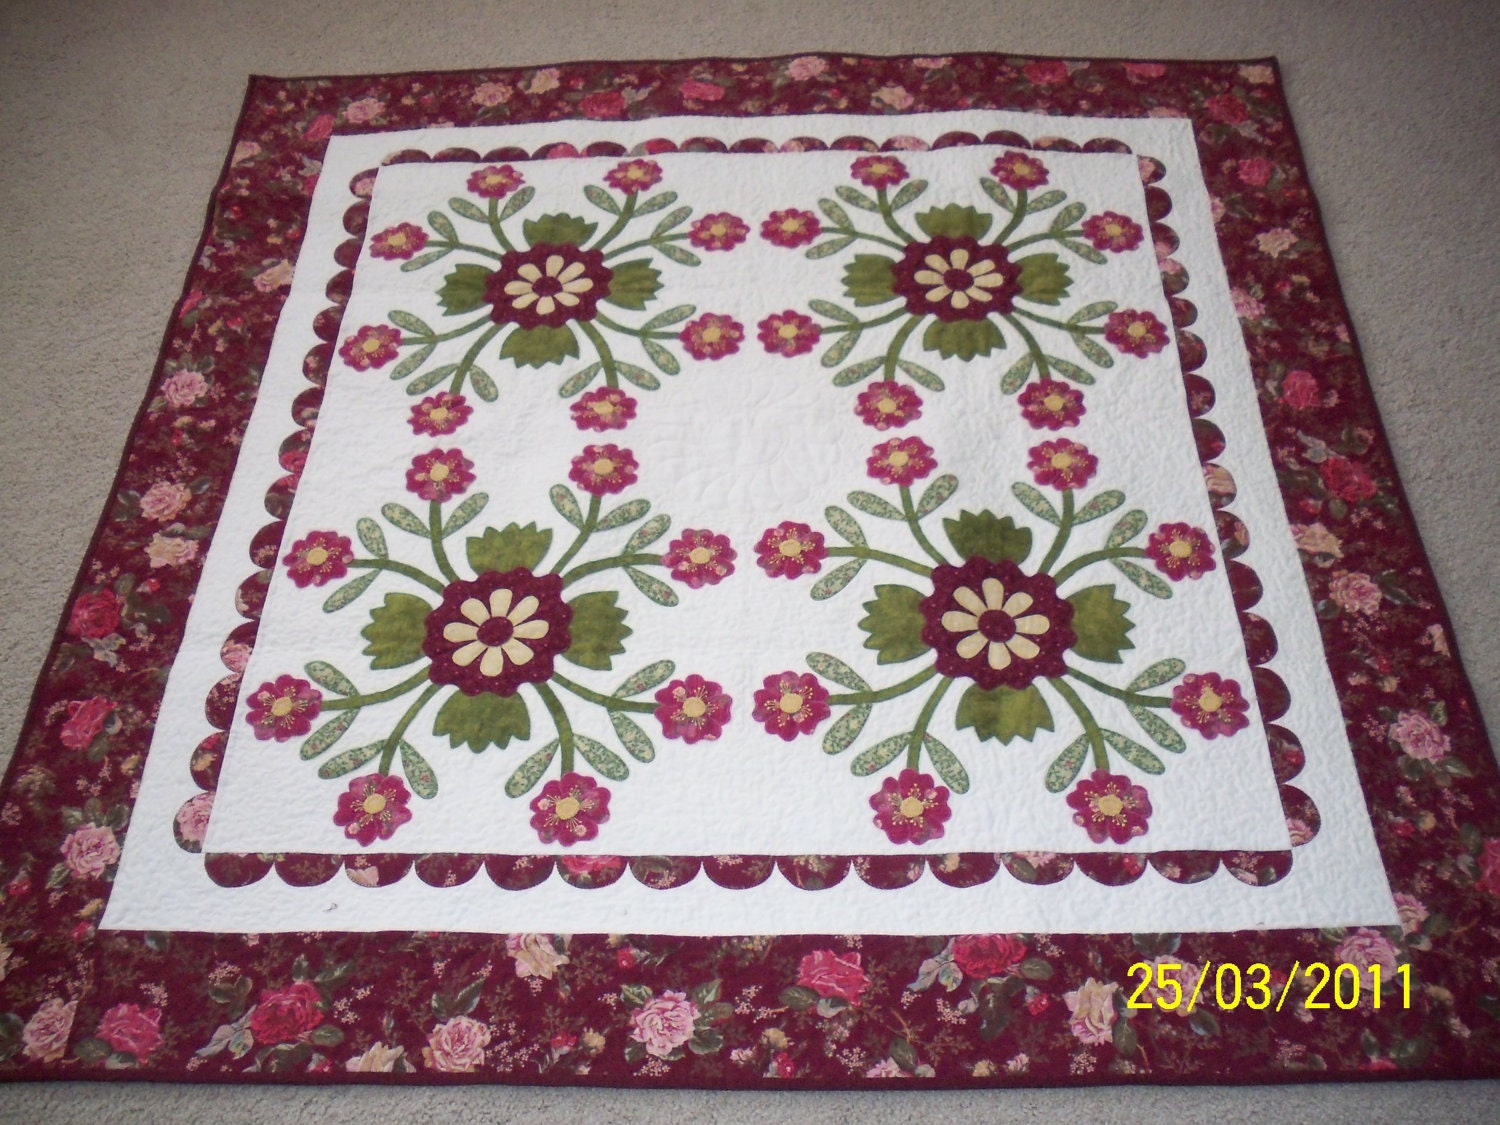 Applique Quilt Pattern WHIG ROSE 2 by AnniesQuiltCraft on Etsy